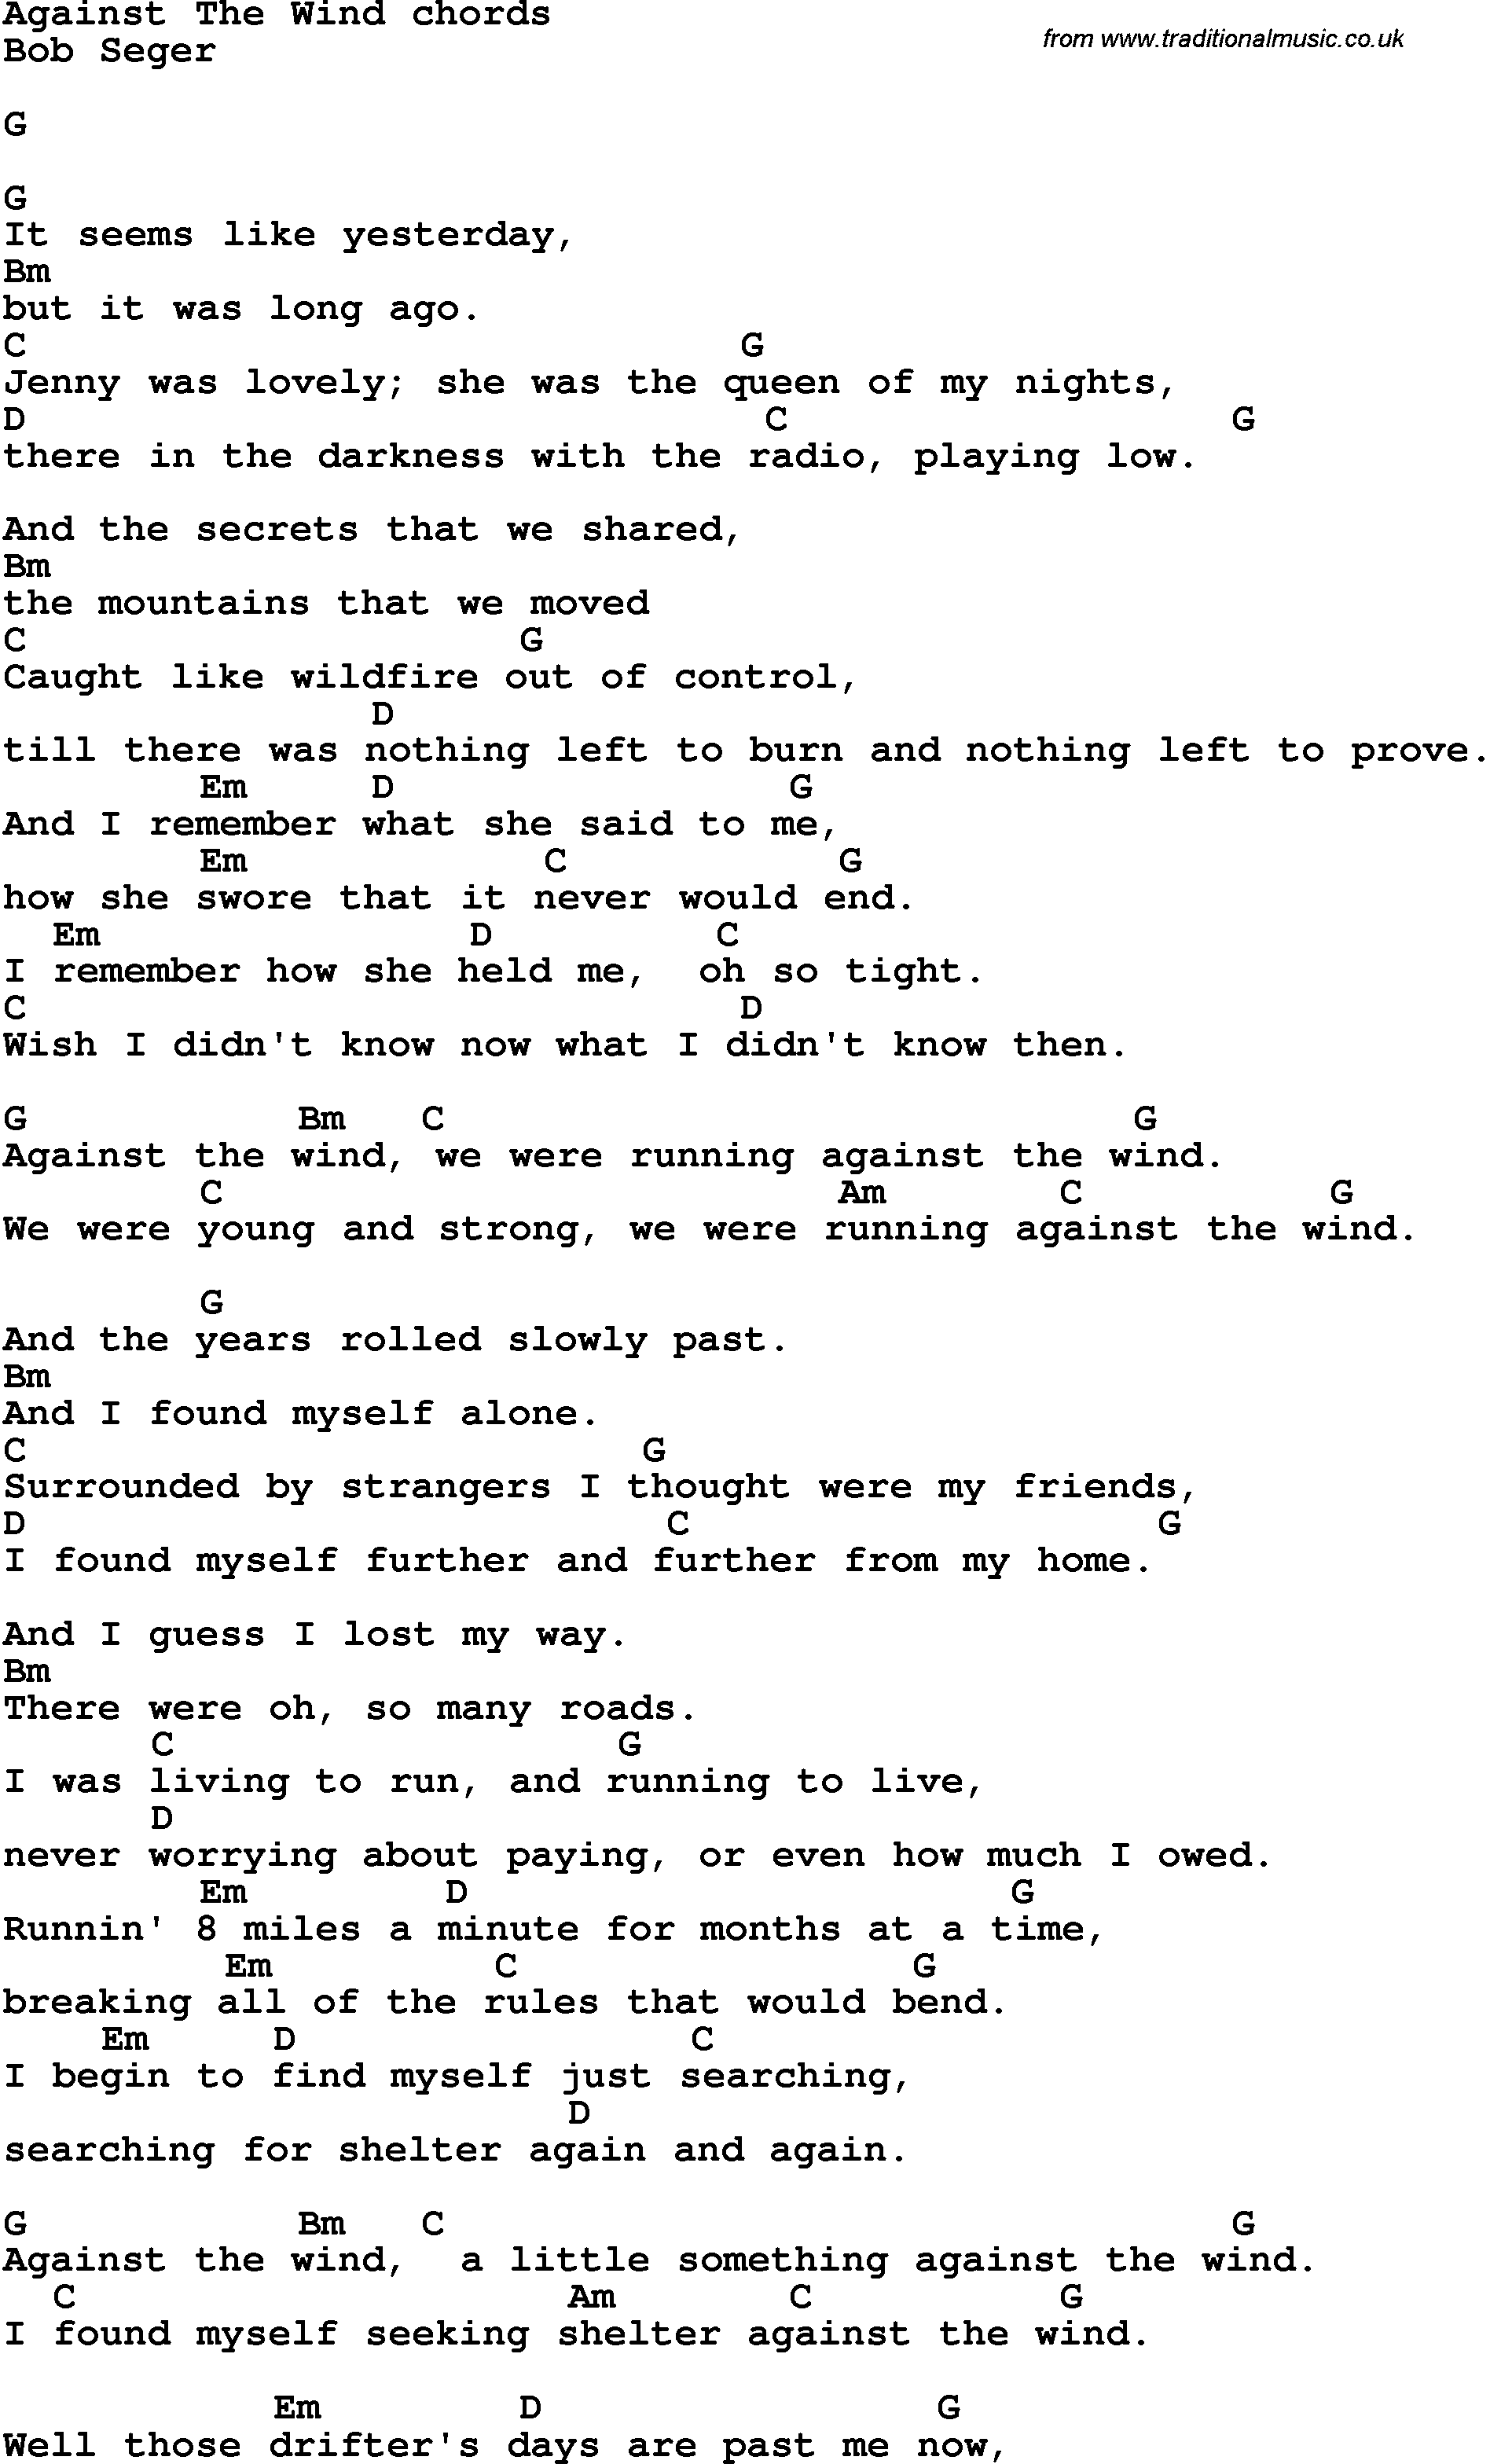 Song Lyrics With Guitar Chords For Against The Wind